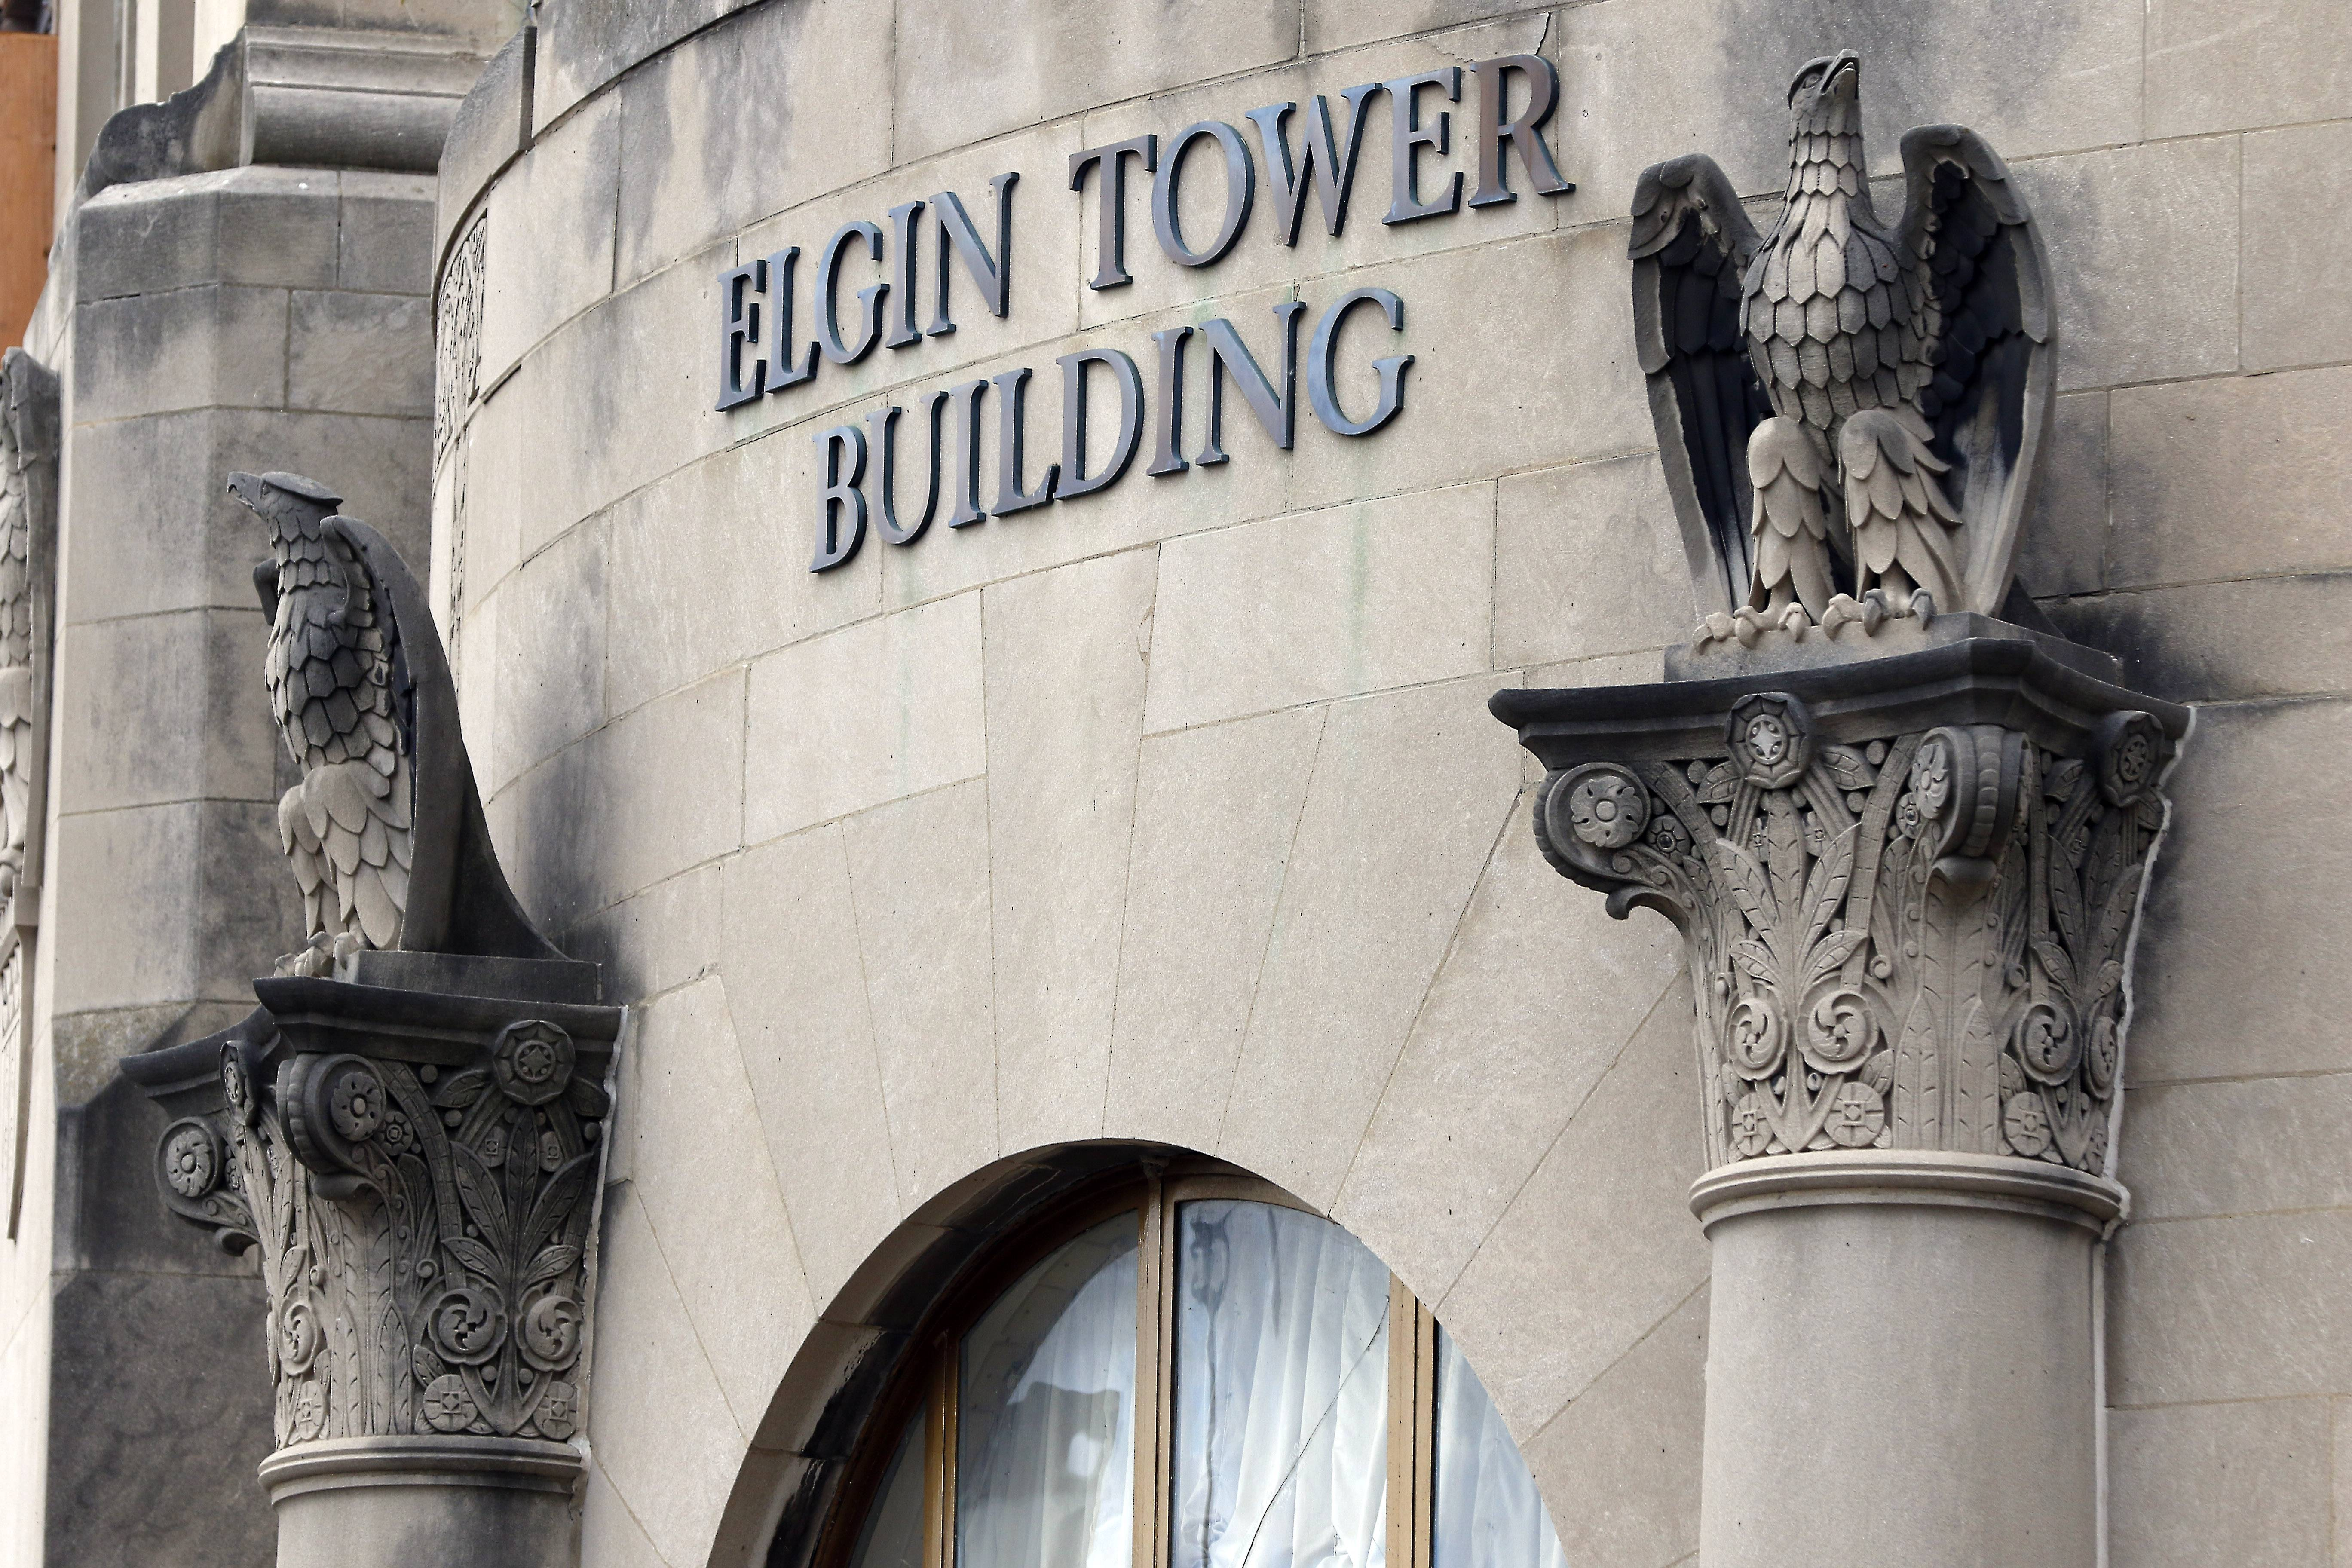 The Elgin Tower Building is being renovated into 44 one- and two-bedroom apartments with rents starting at $915.